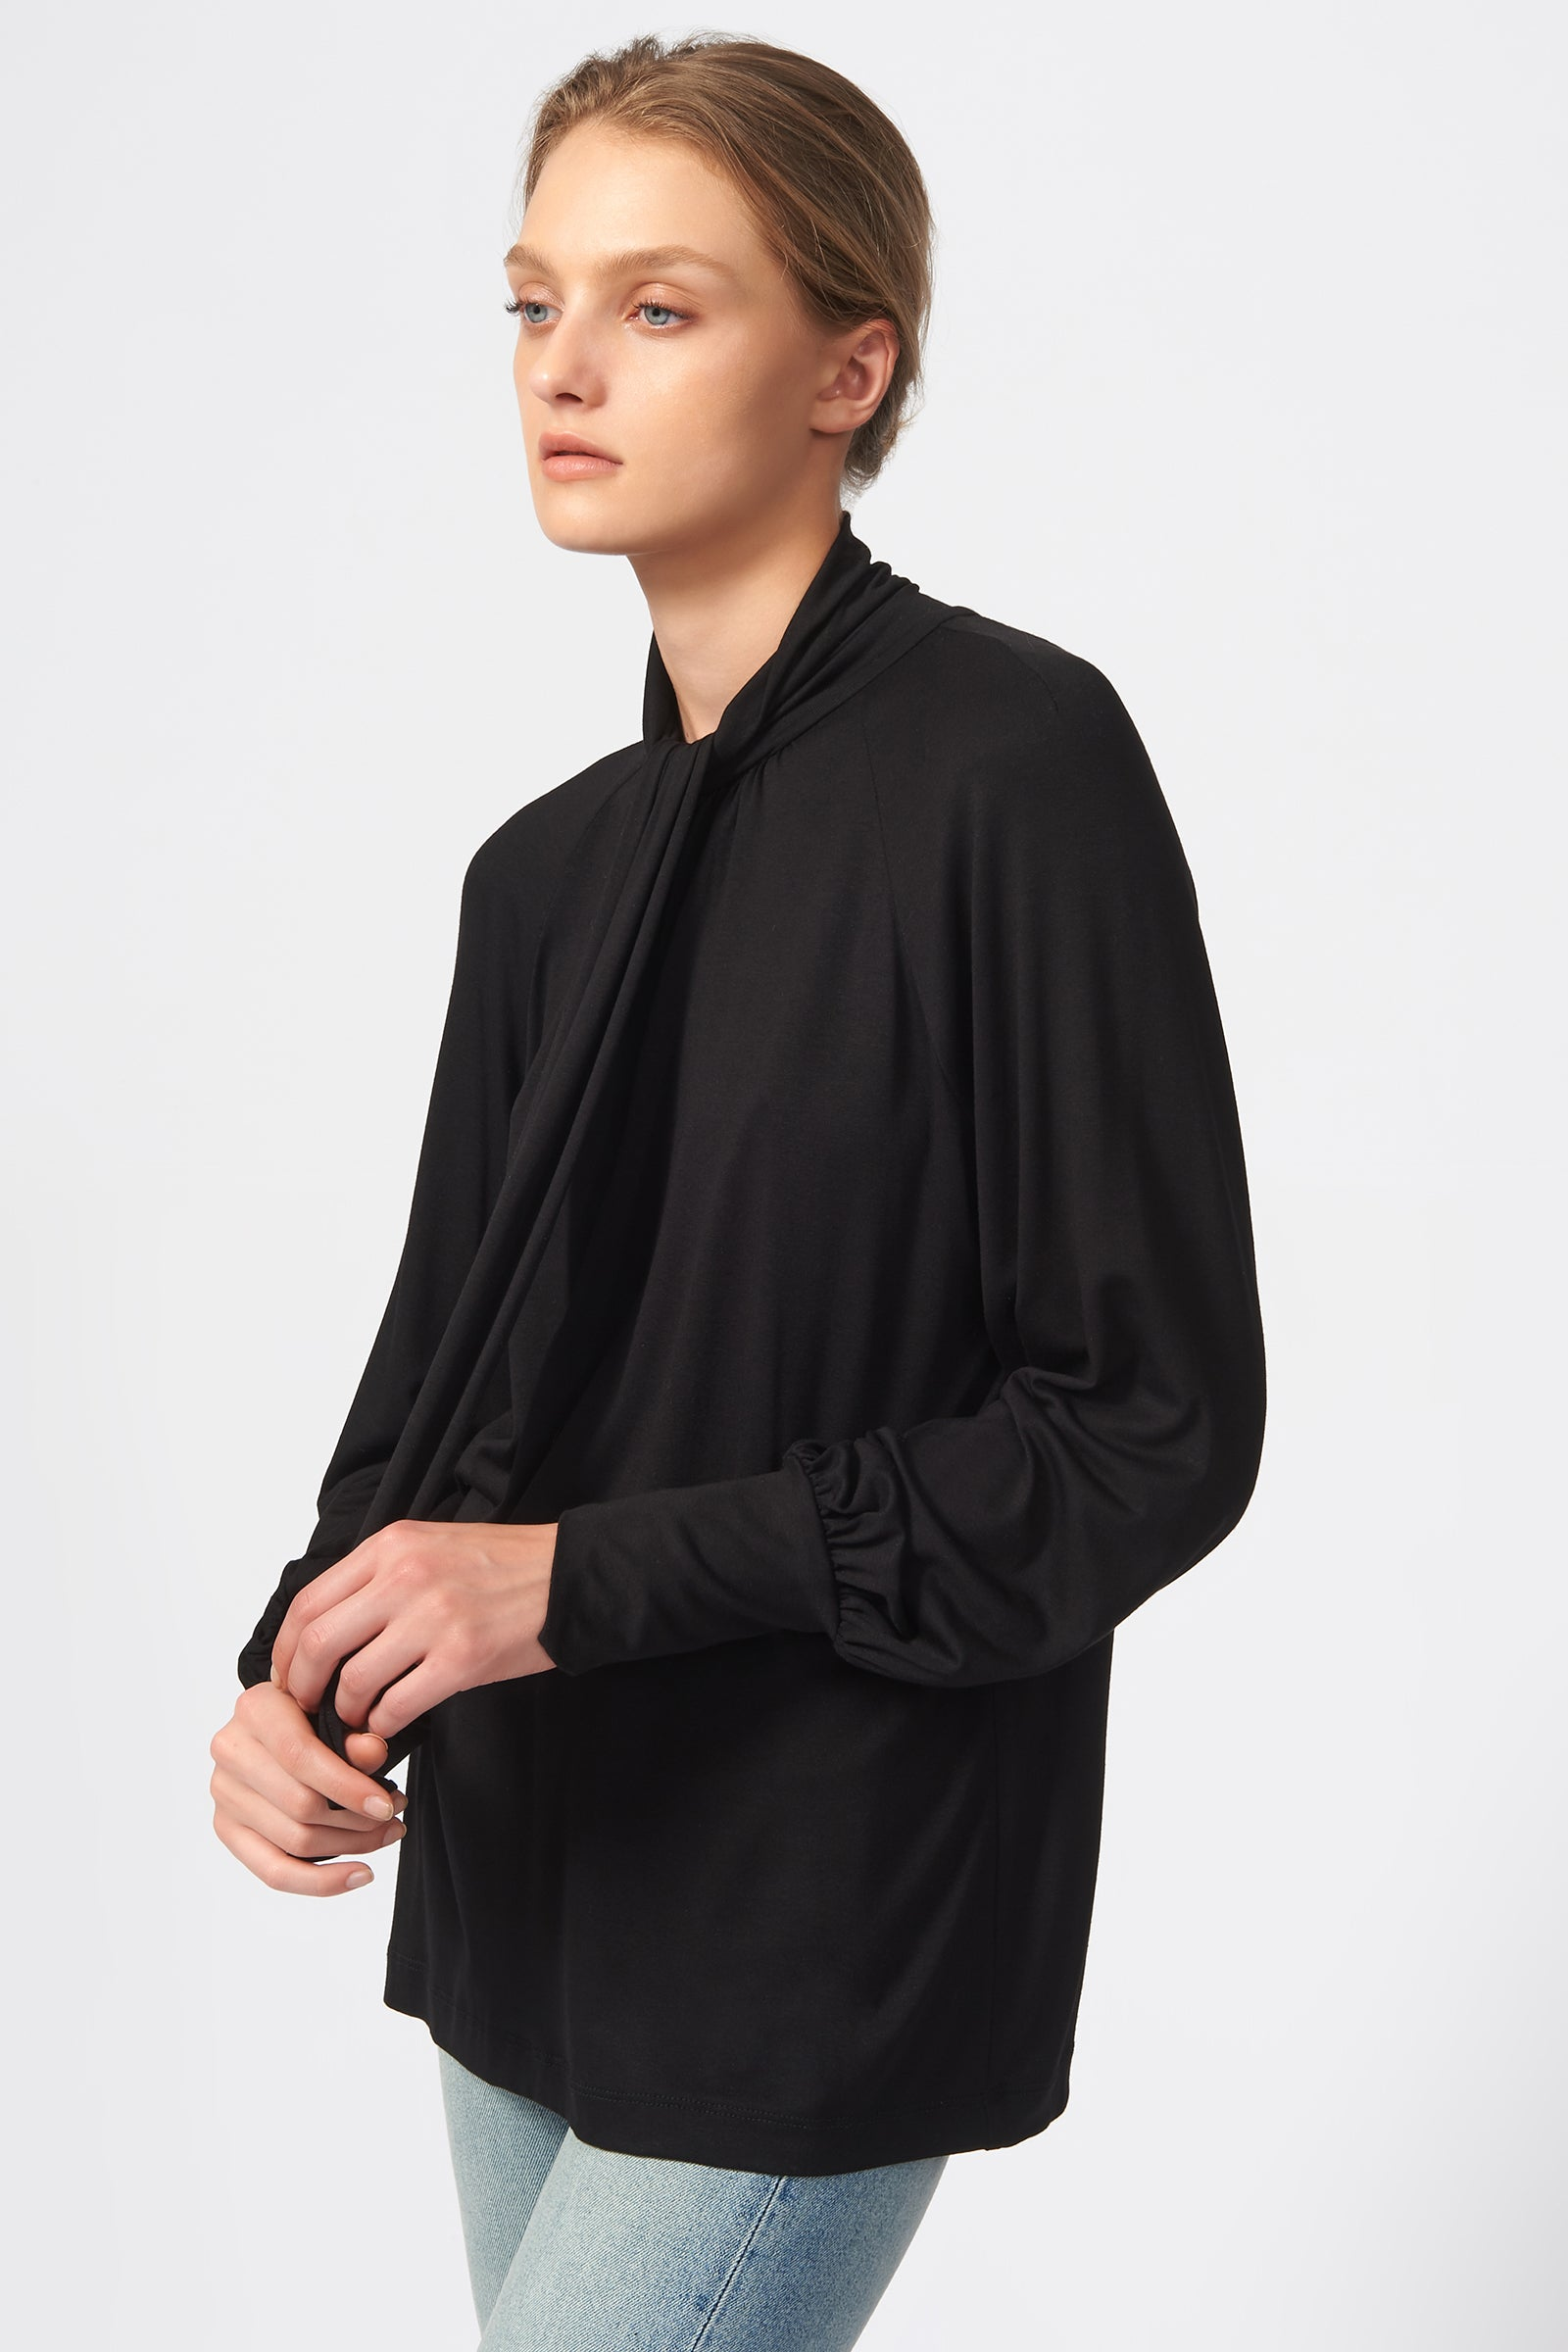 Kal Rieman Priestess Knit Blouse in Black on Model Side View